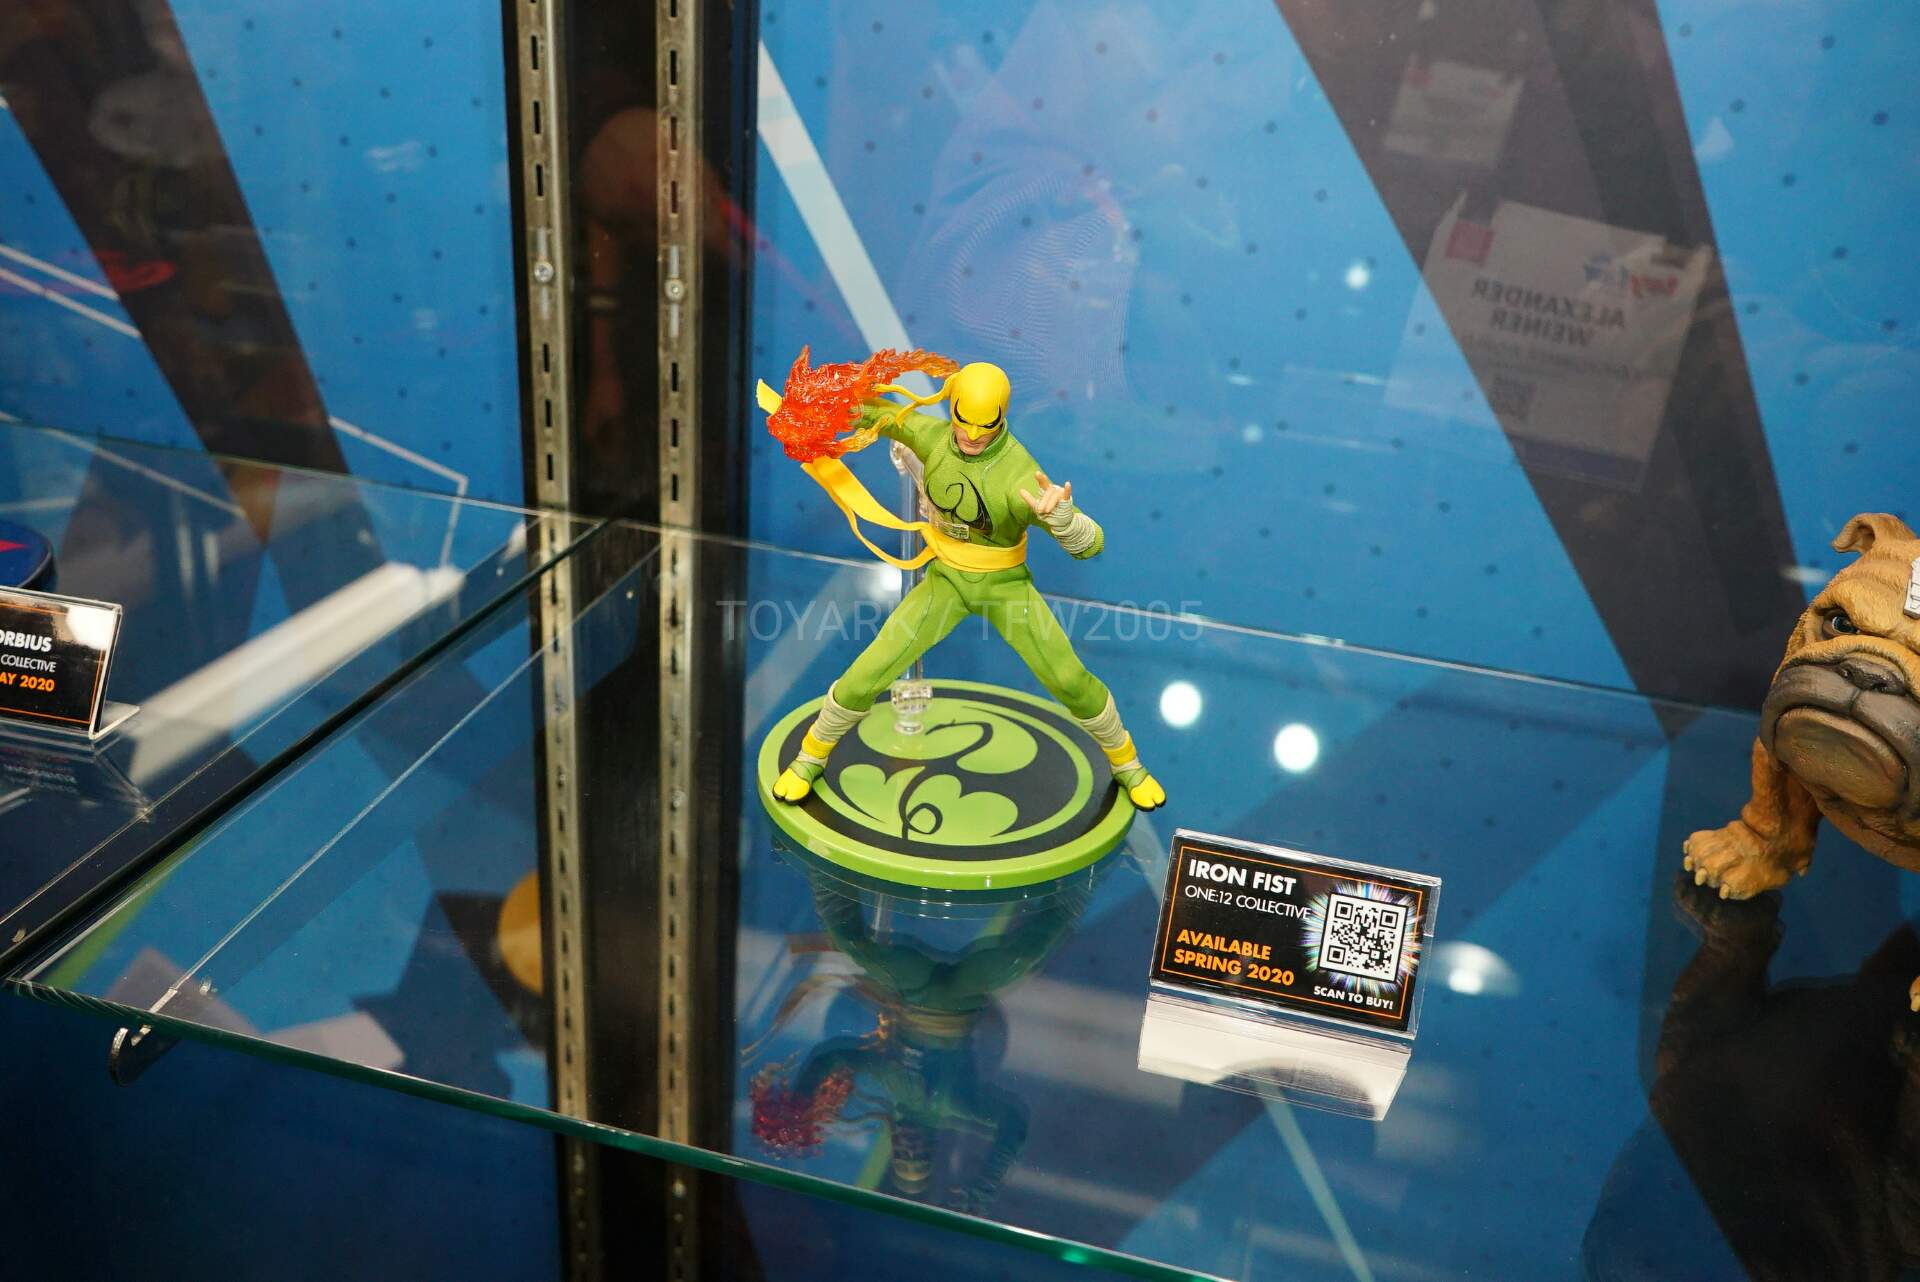 Toy-Fair-2020-Mezco-One12-028.jpg